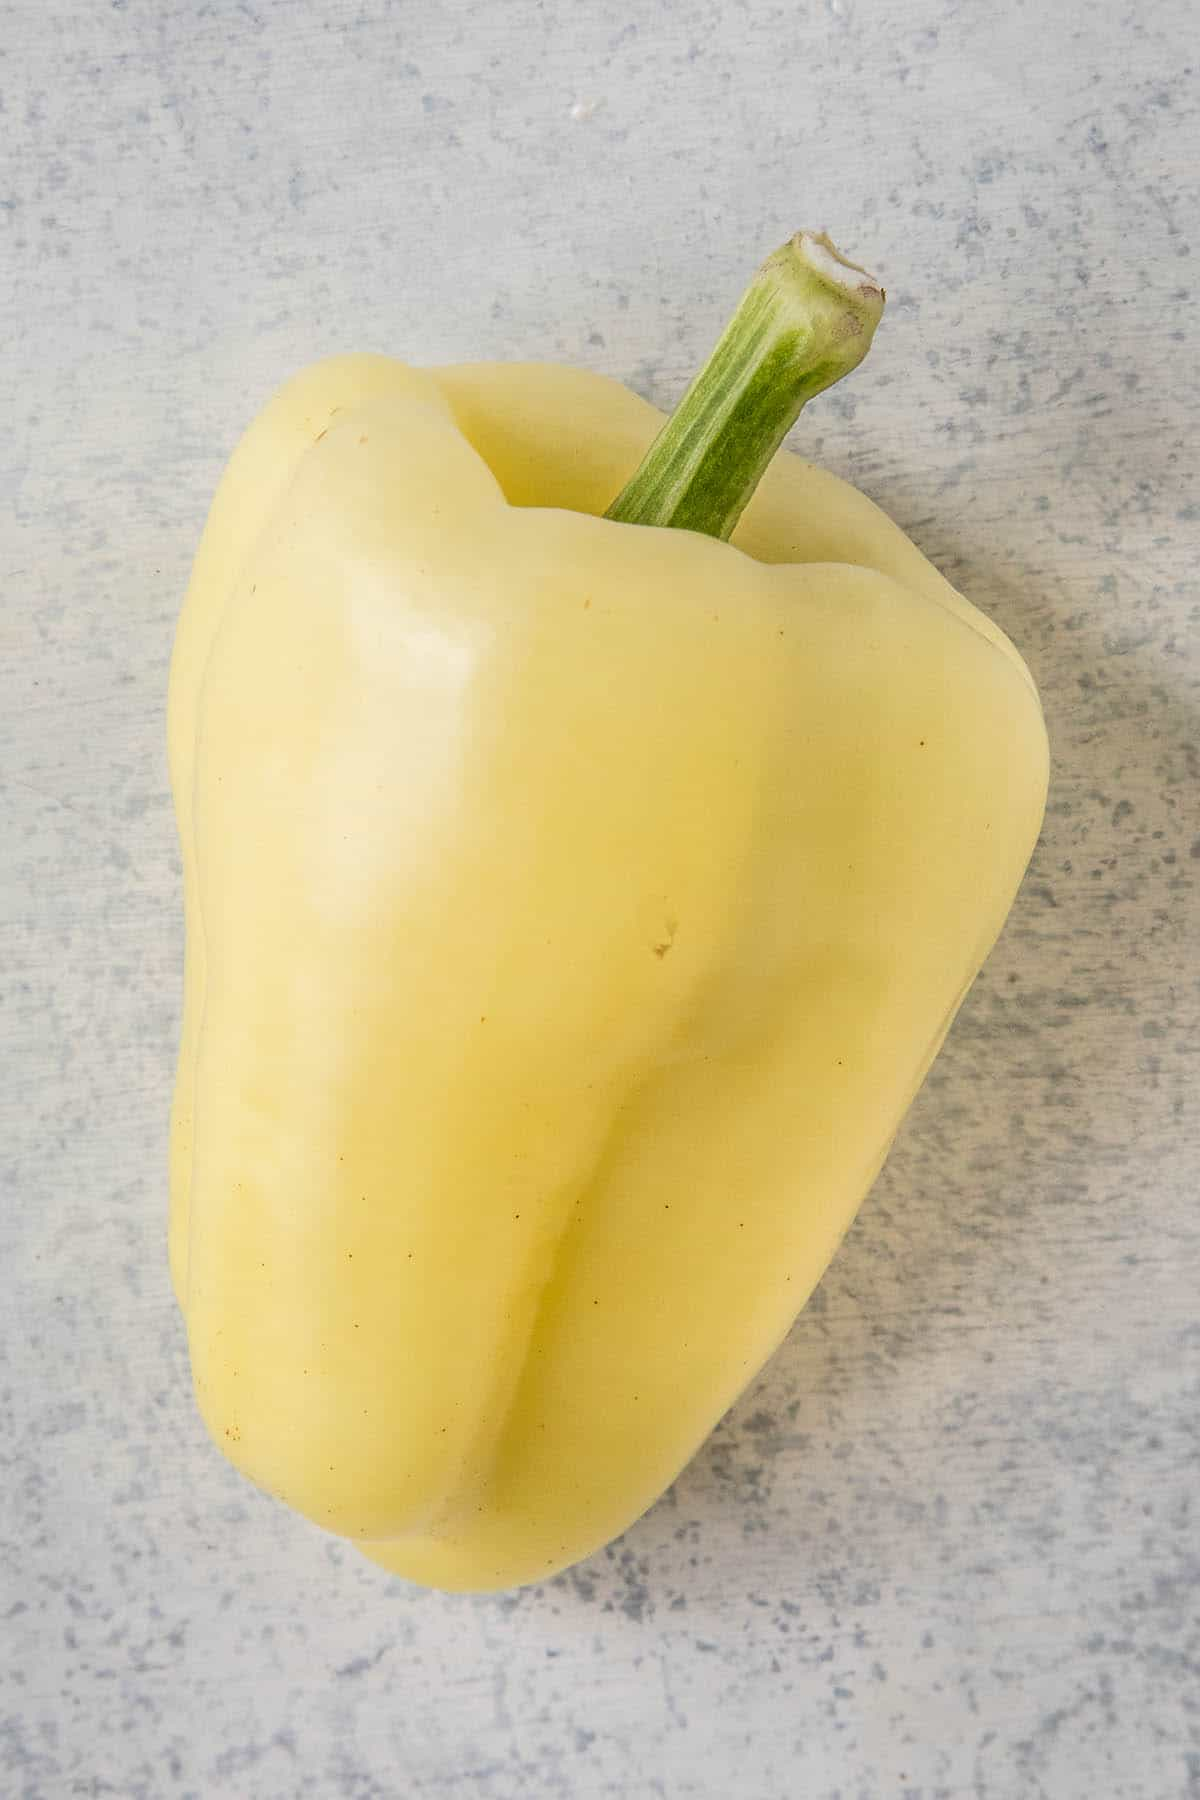 Albino Chili Pepper